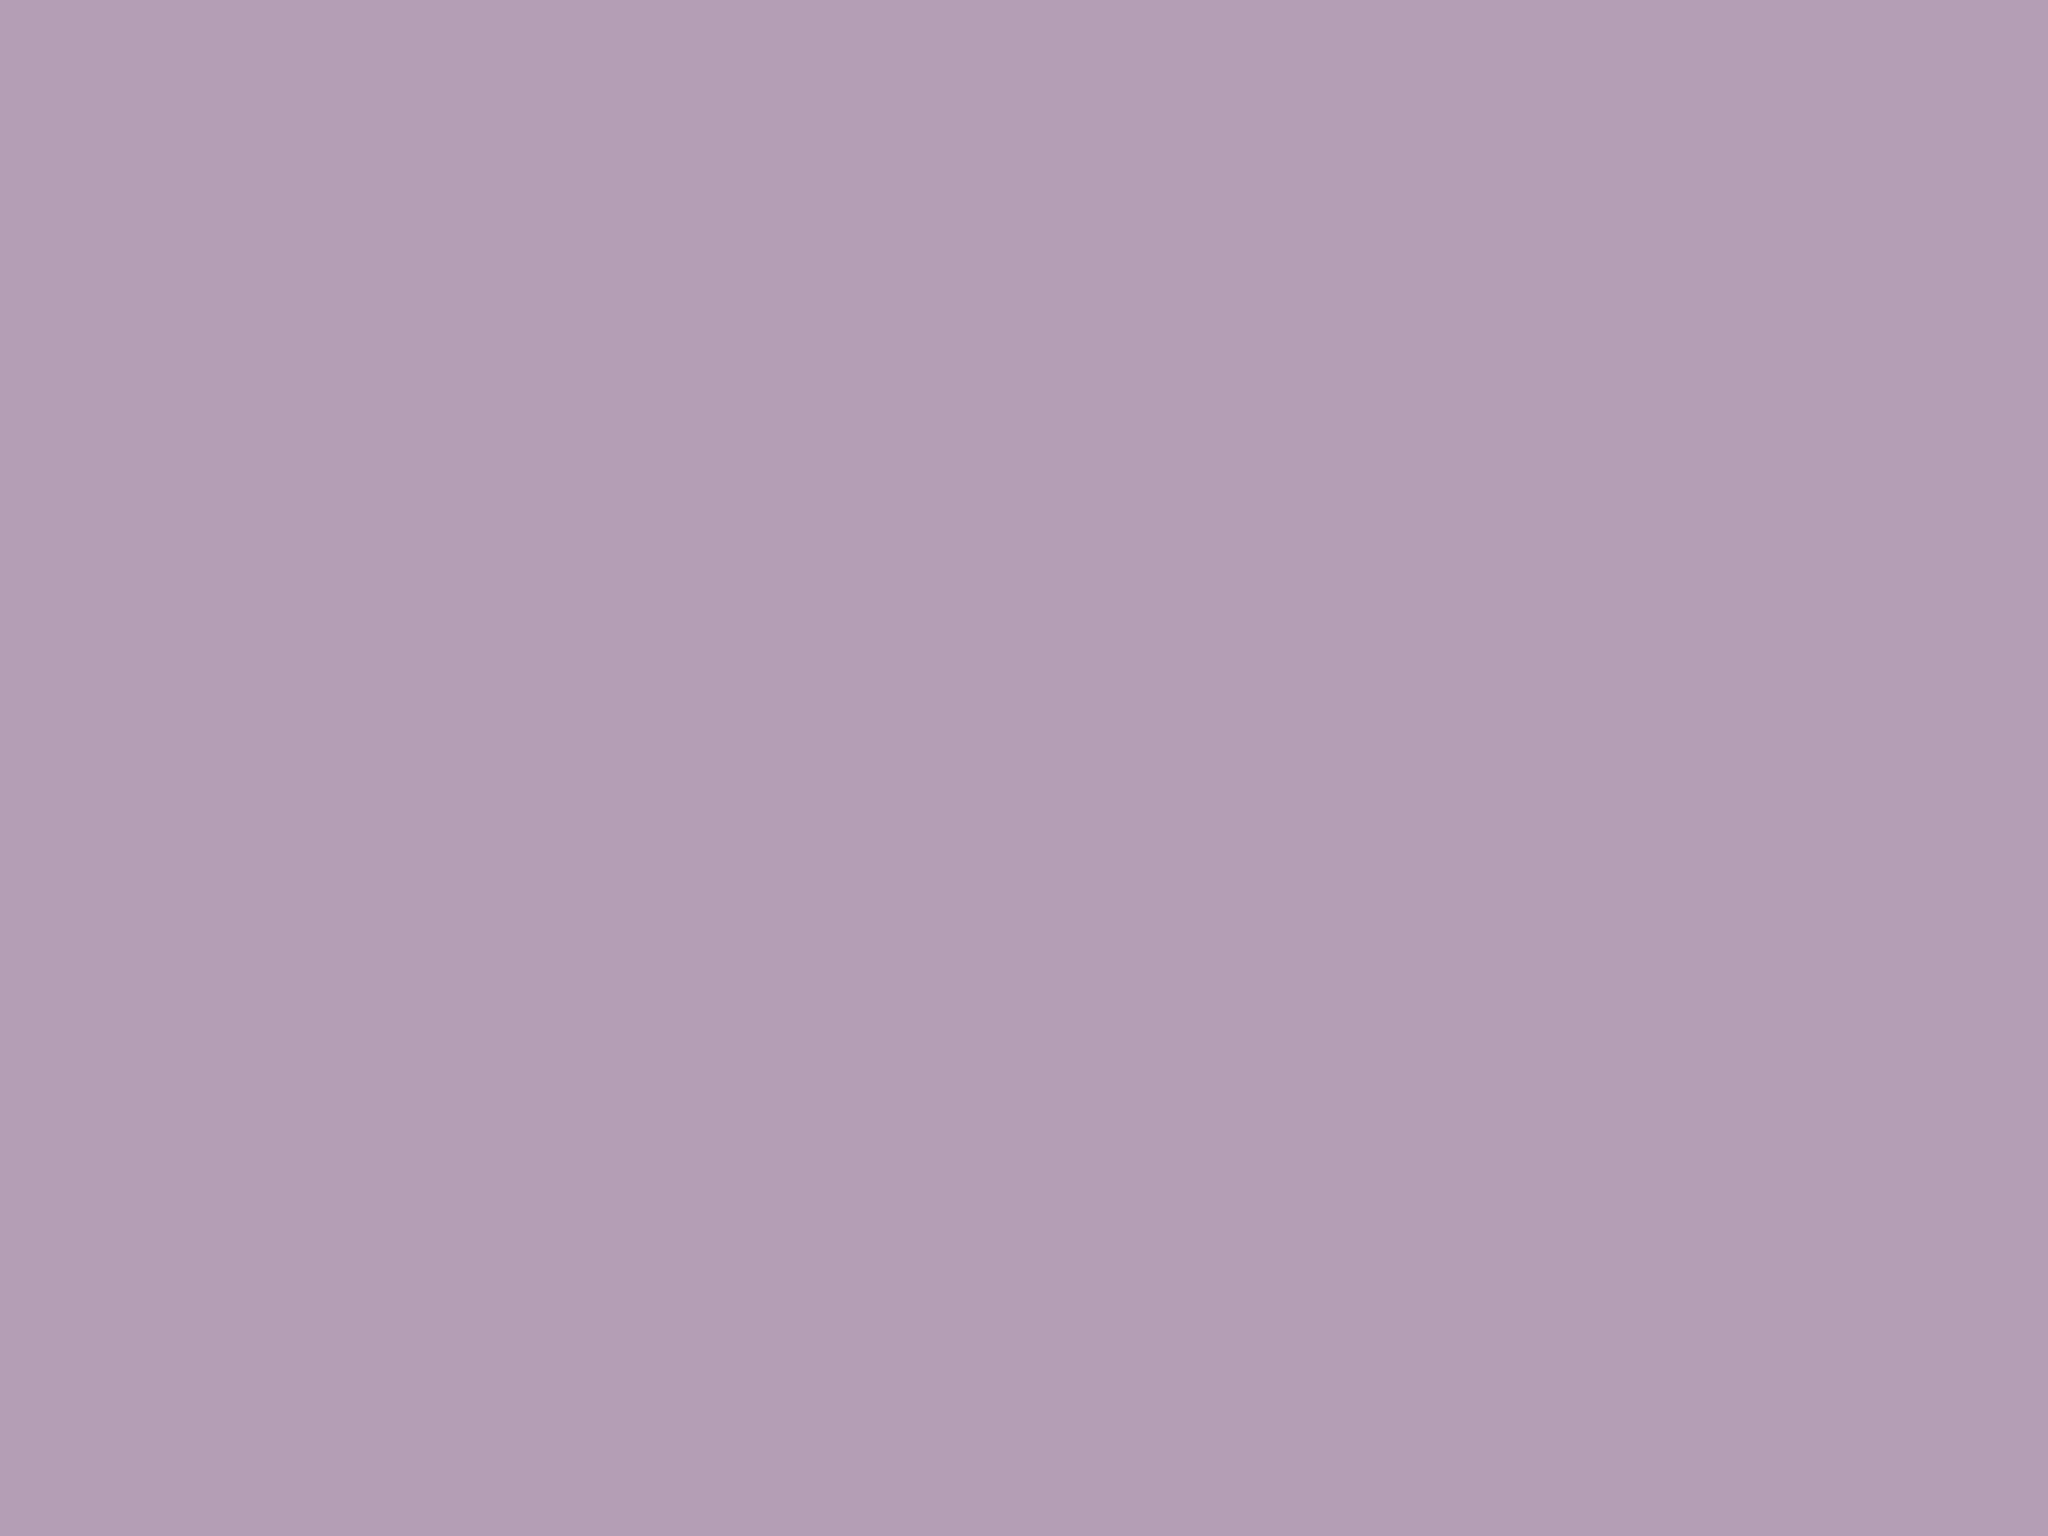 2048x1536 Pastel Purple Solid Color Background